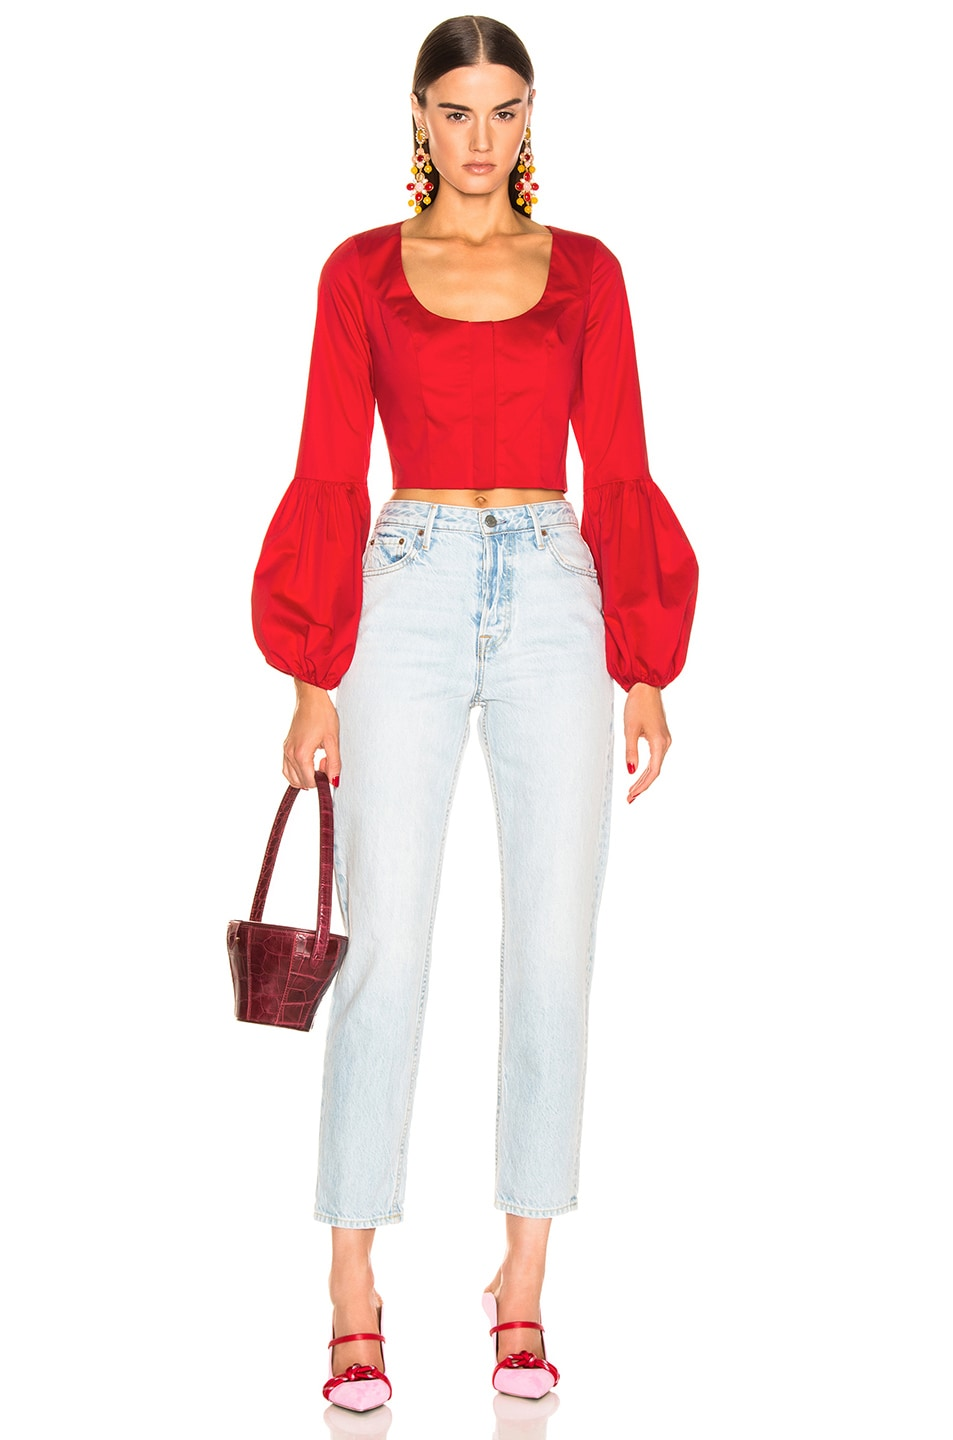 Image 4 of Alexis Ottera Top in Scarlet Red